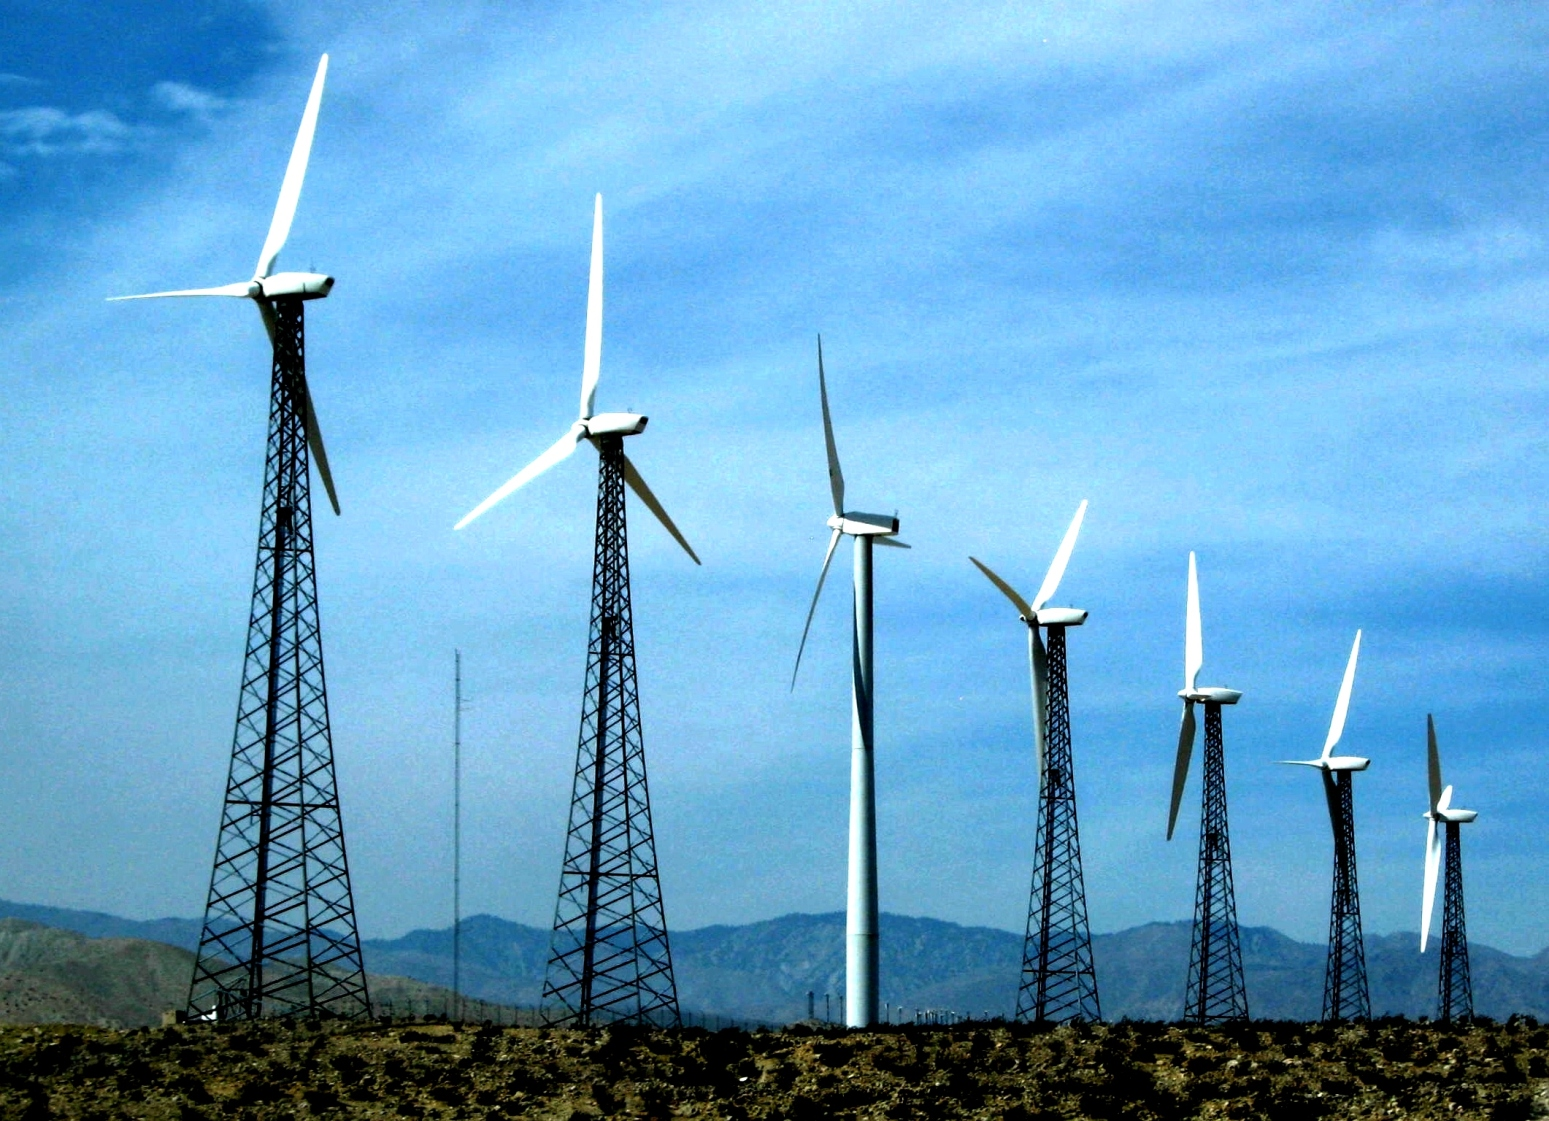 <p>Wind turbines in Southern California. Photo by moonjazz/Flickr</p>